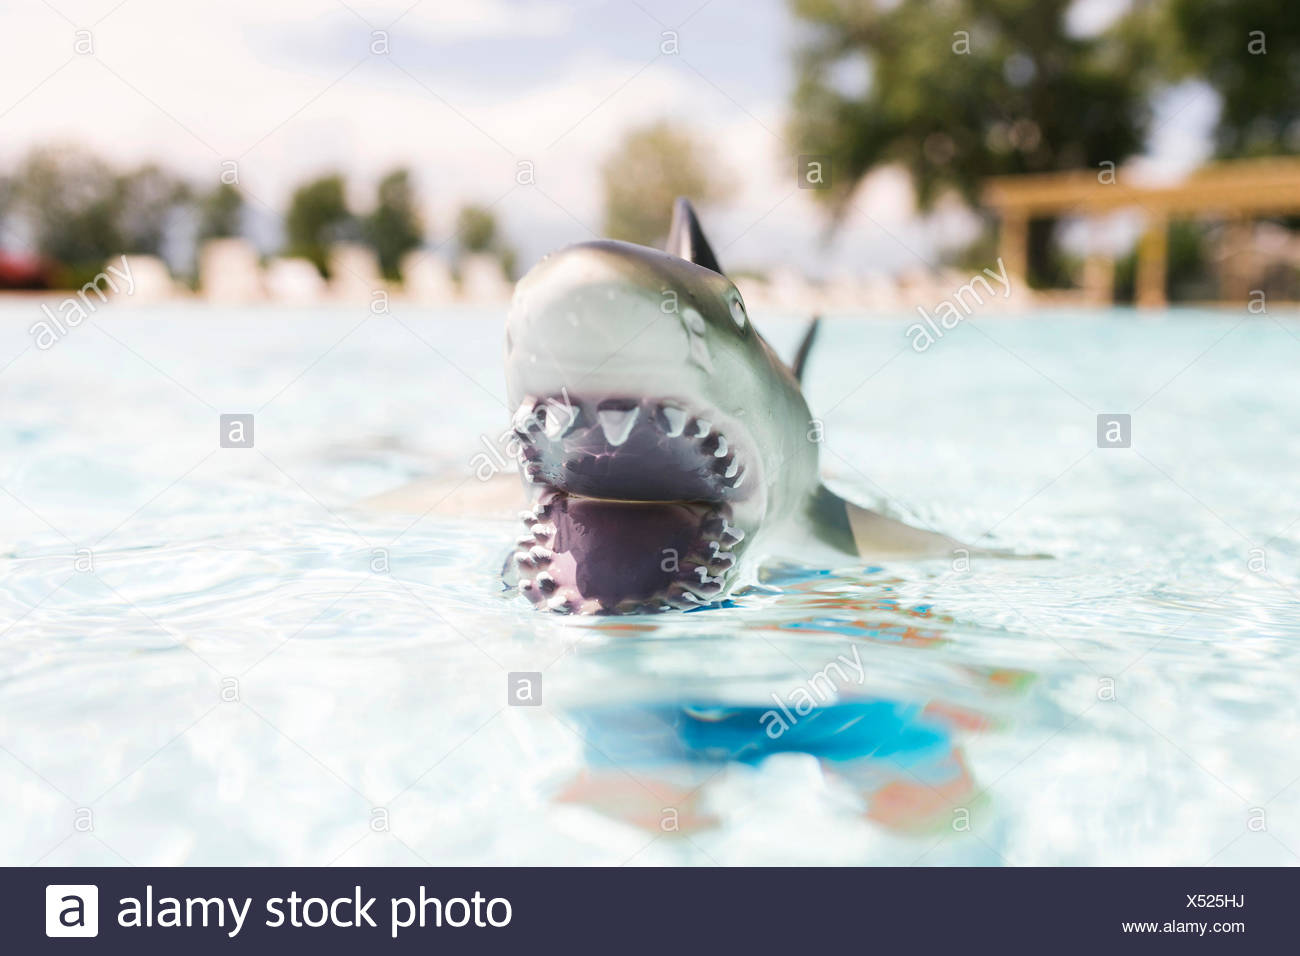 Pool Toy Stock Photos Amp Pool Toy Stock Images Alamy